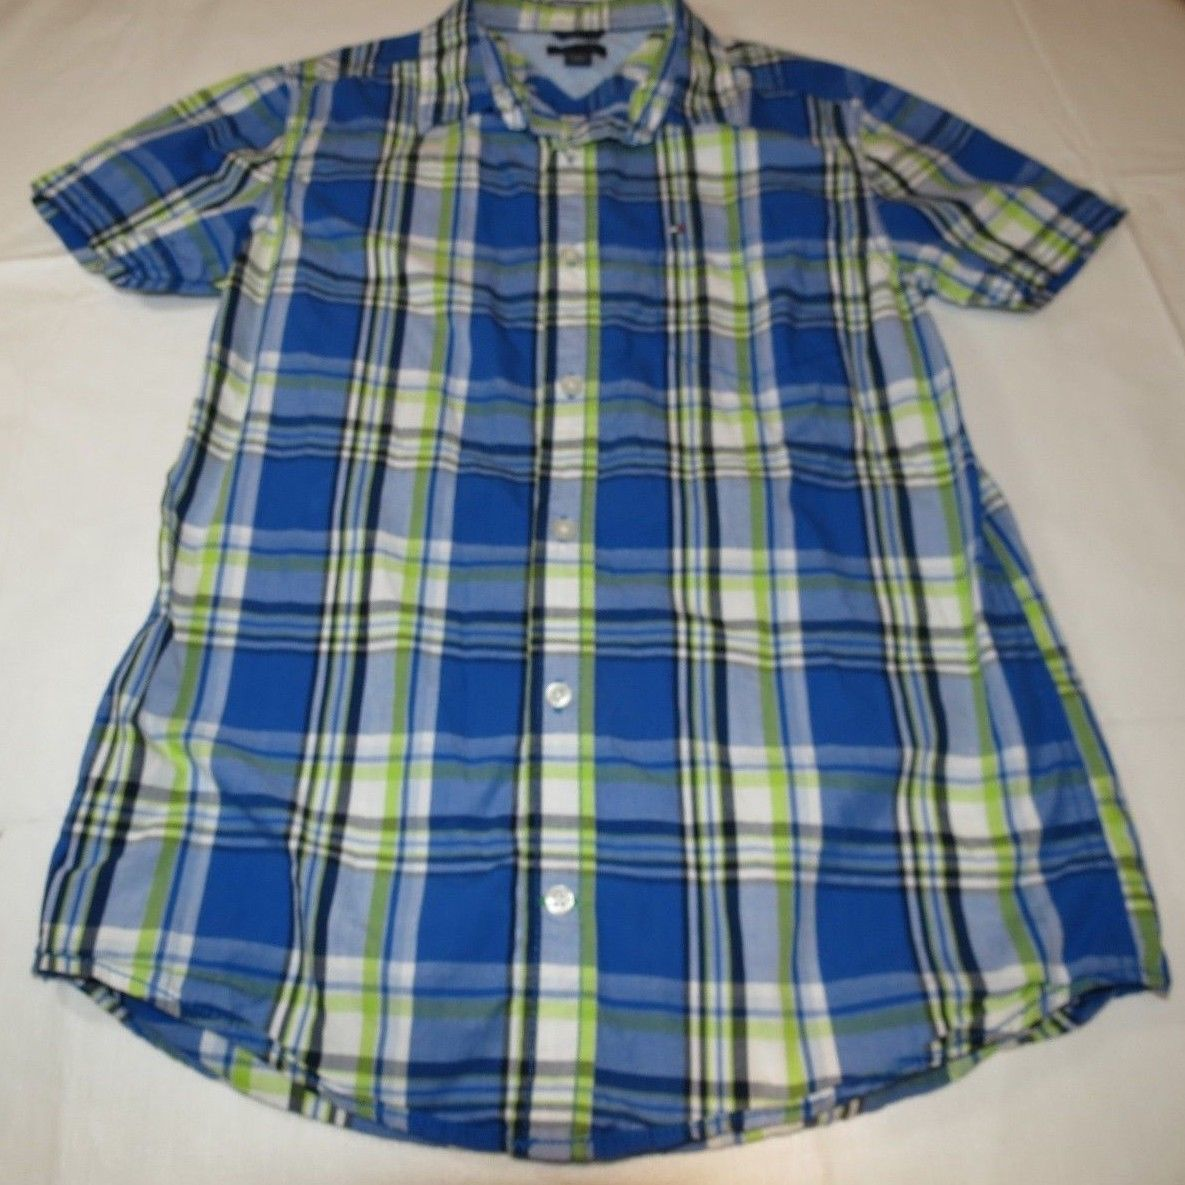 Boy's youth Tommy Hilfiger Plaid button up short sleeve shirt Boys L 16/18 EUC